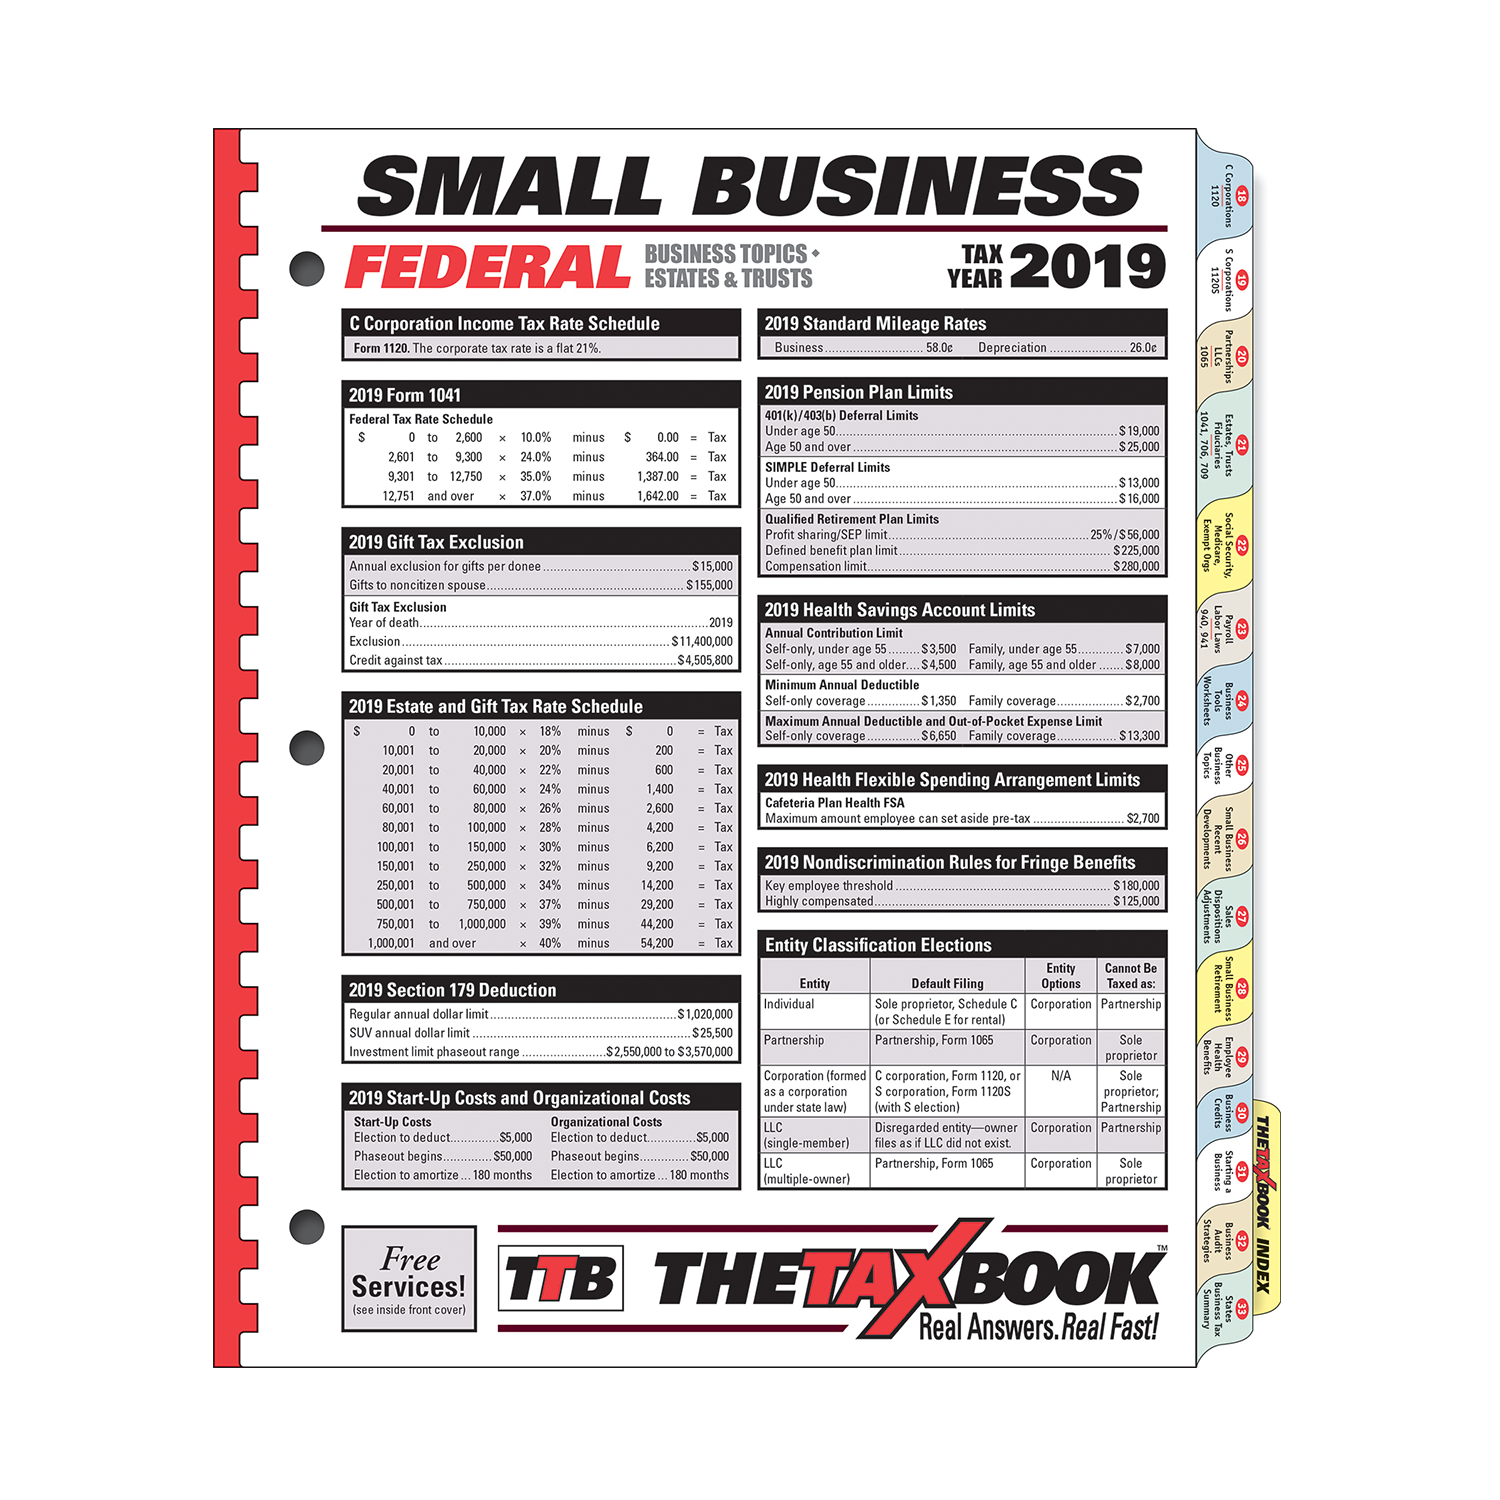 TheTaxBook Small Business Edition (2019) - #3994